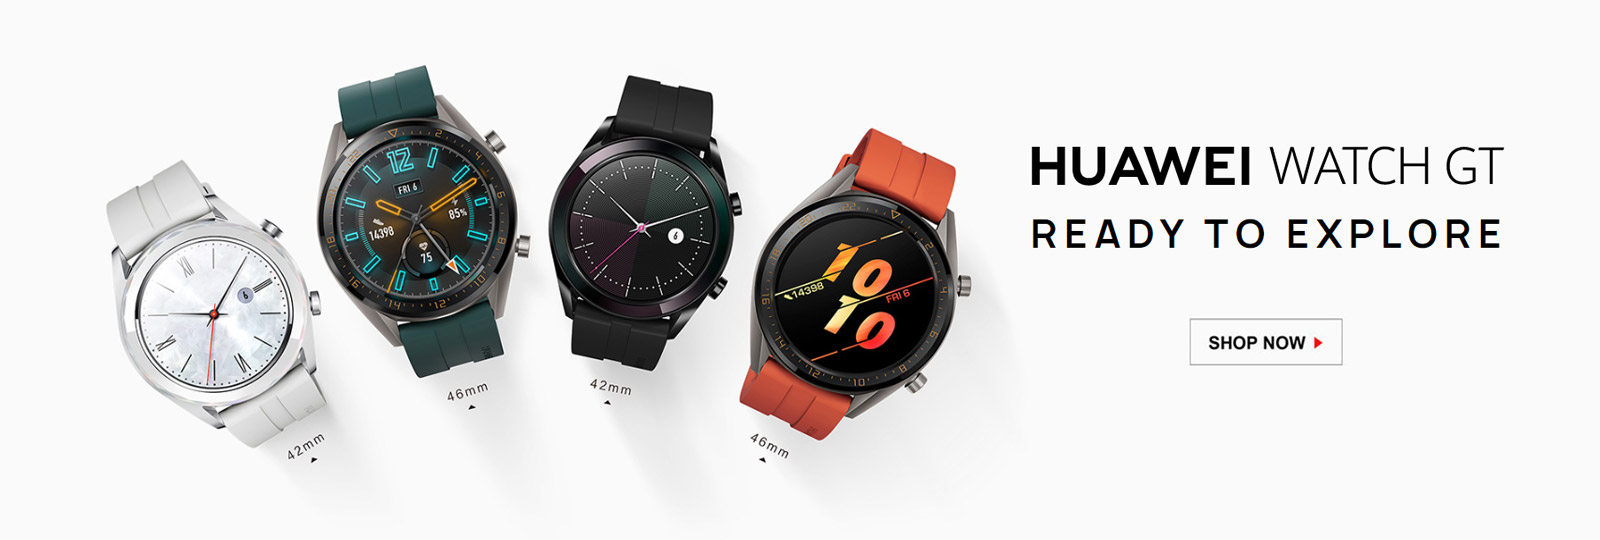 Huawei Watch GT - Available Now